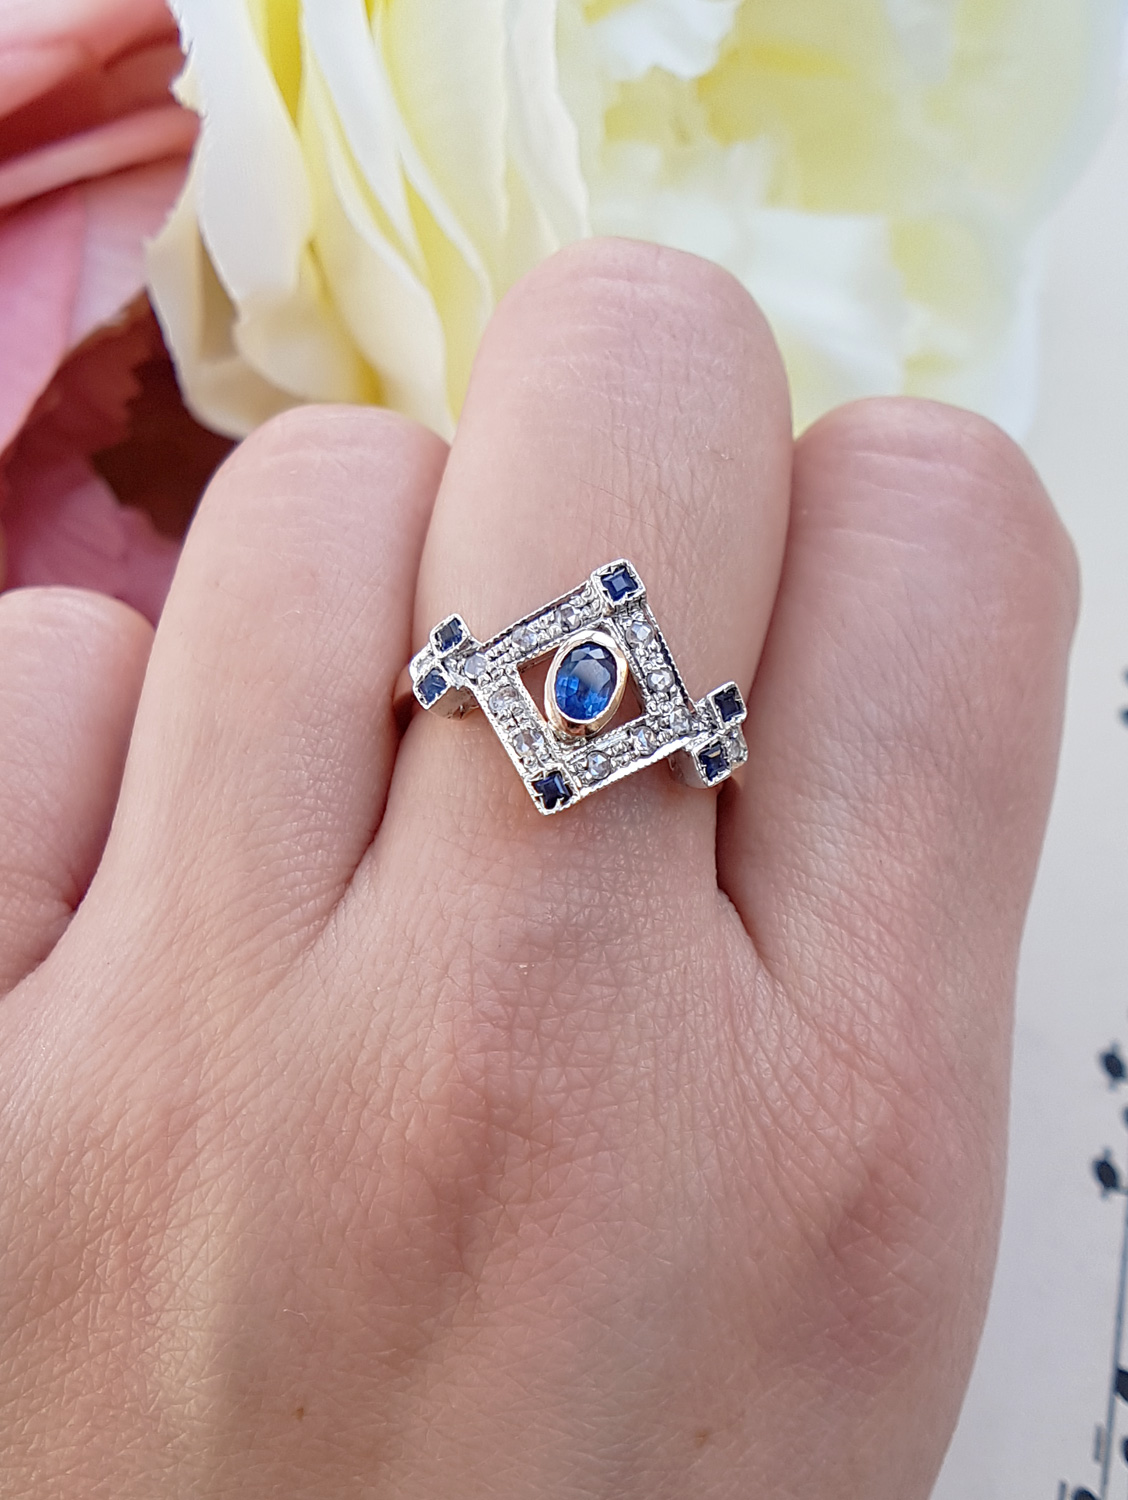 Antique Art Deco 9ct Rose Gold Ring with Diamonds and Sapphires